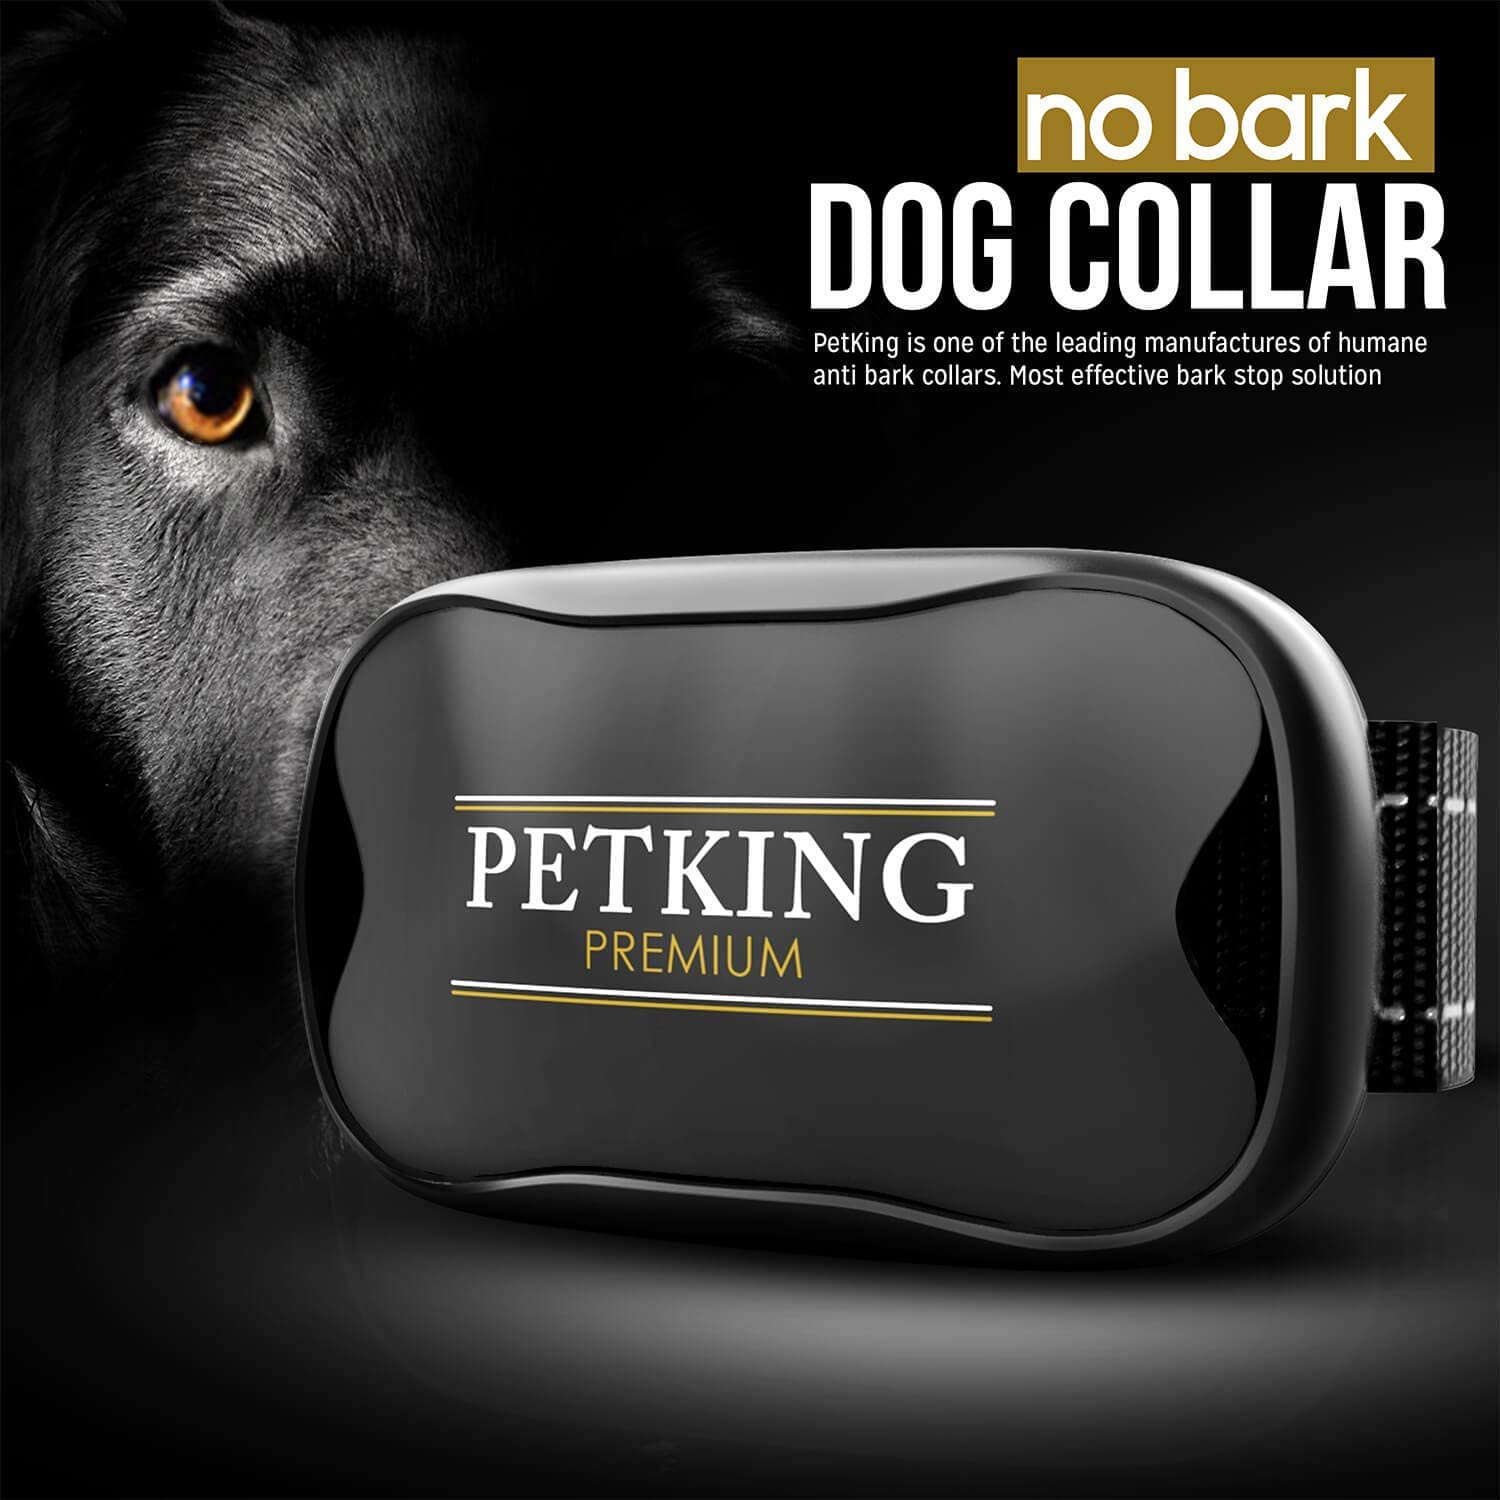 PETKING - Effective Anti Bark Dog Collar | Safe & Hummane No Barking Control Device to Stop Small Medium & Large Breeds | No Shock Spray or Aids | ...